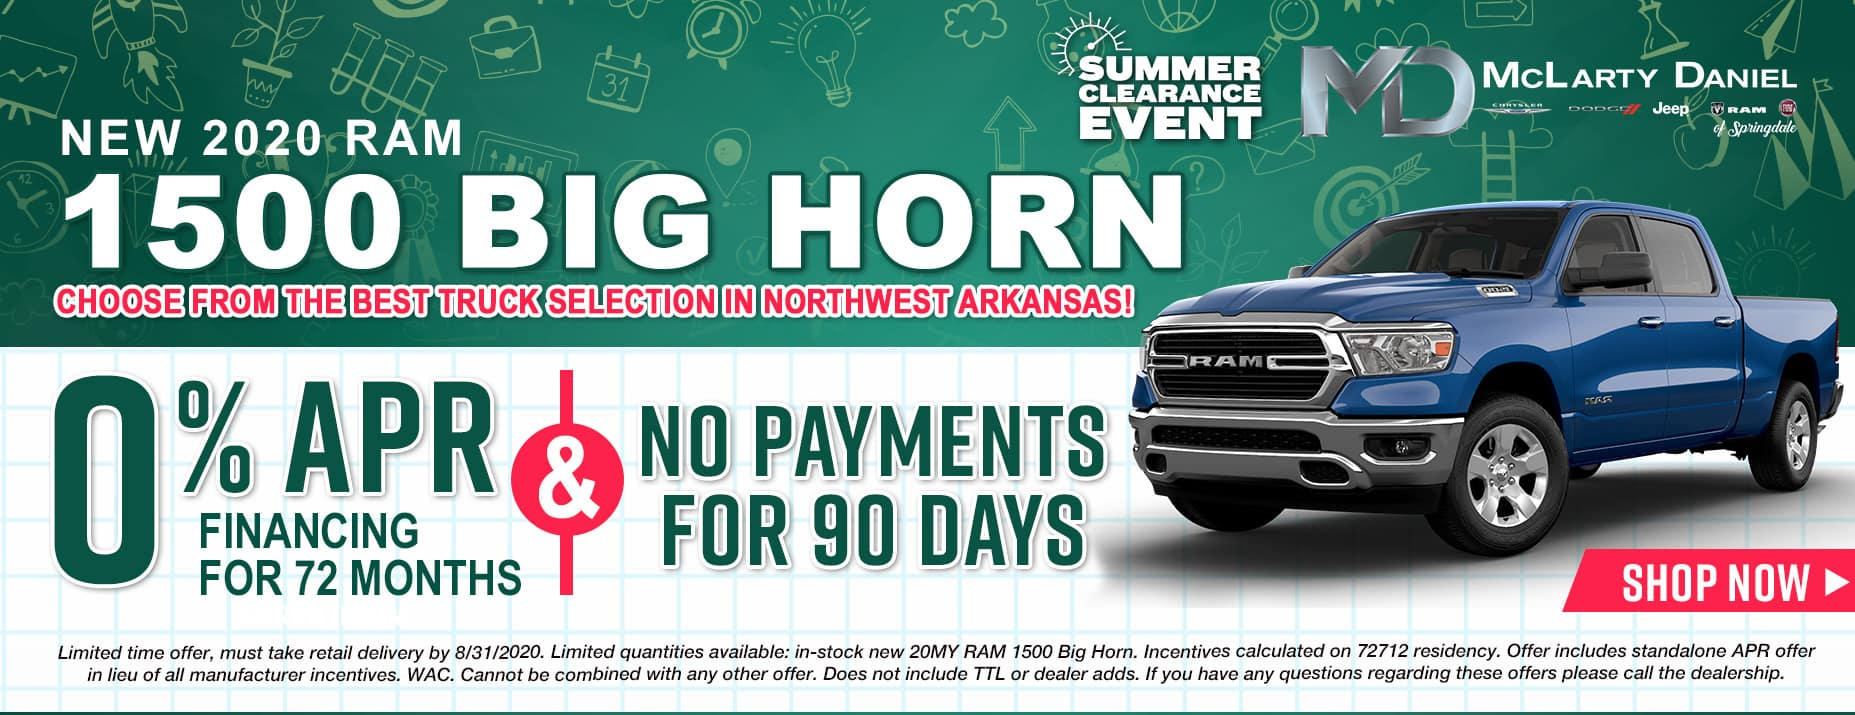 0% APR for 72 months and NO PAYMENTS FOR 90 DAYS available on 2020 RAM 1500 Big Horn!